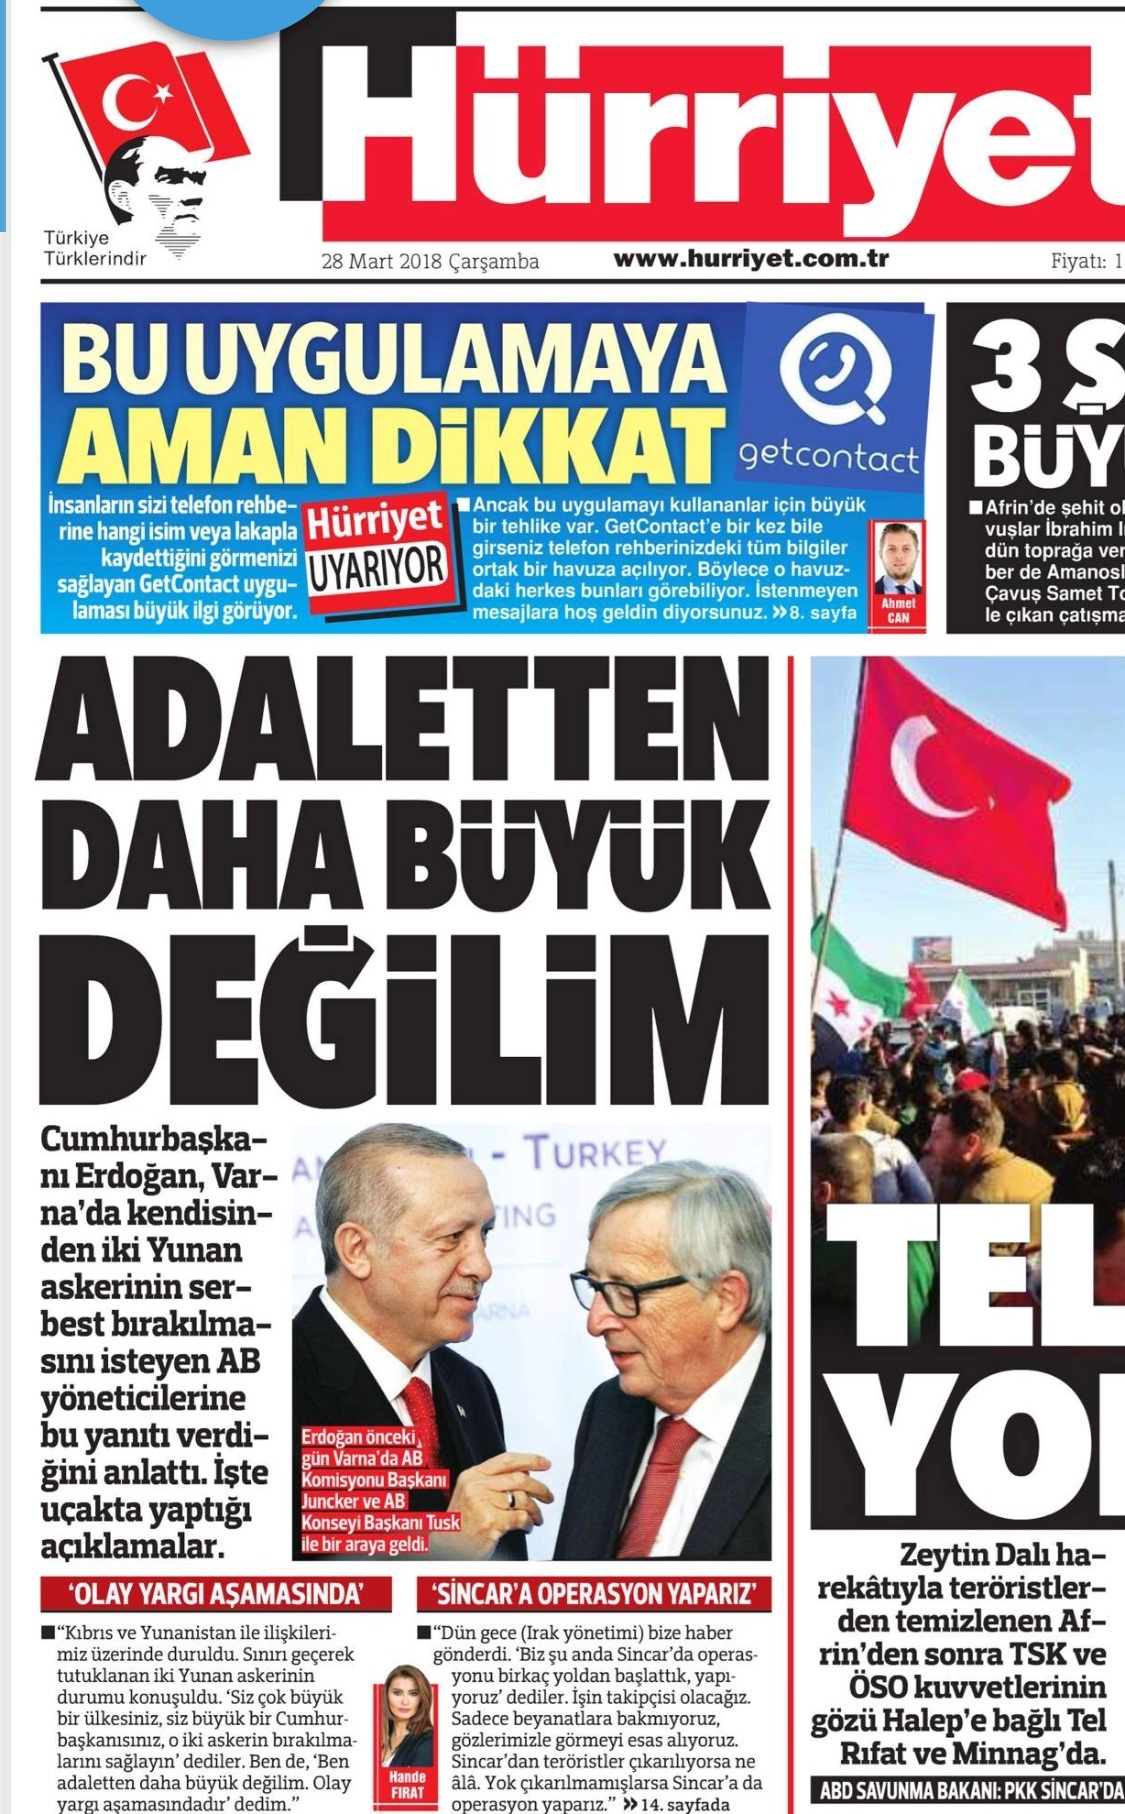 Hurriyet's first page headline about the 2 Greek soldiers